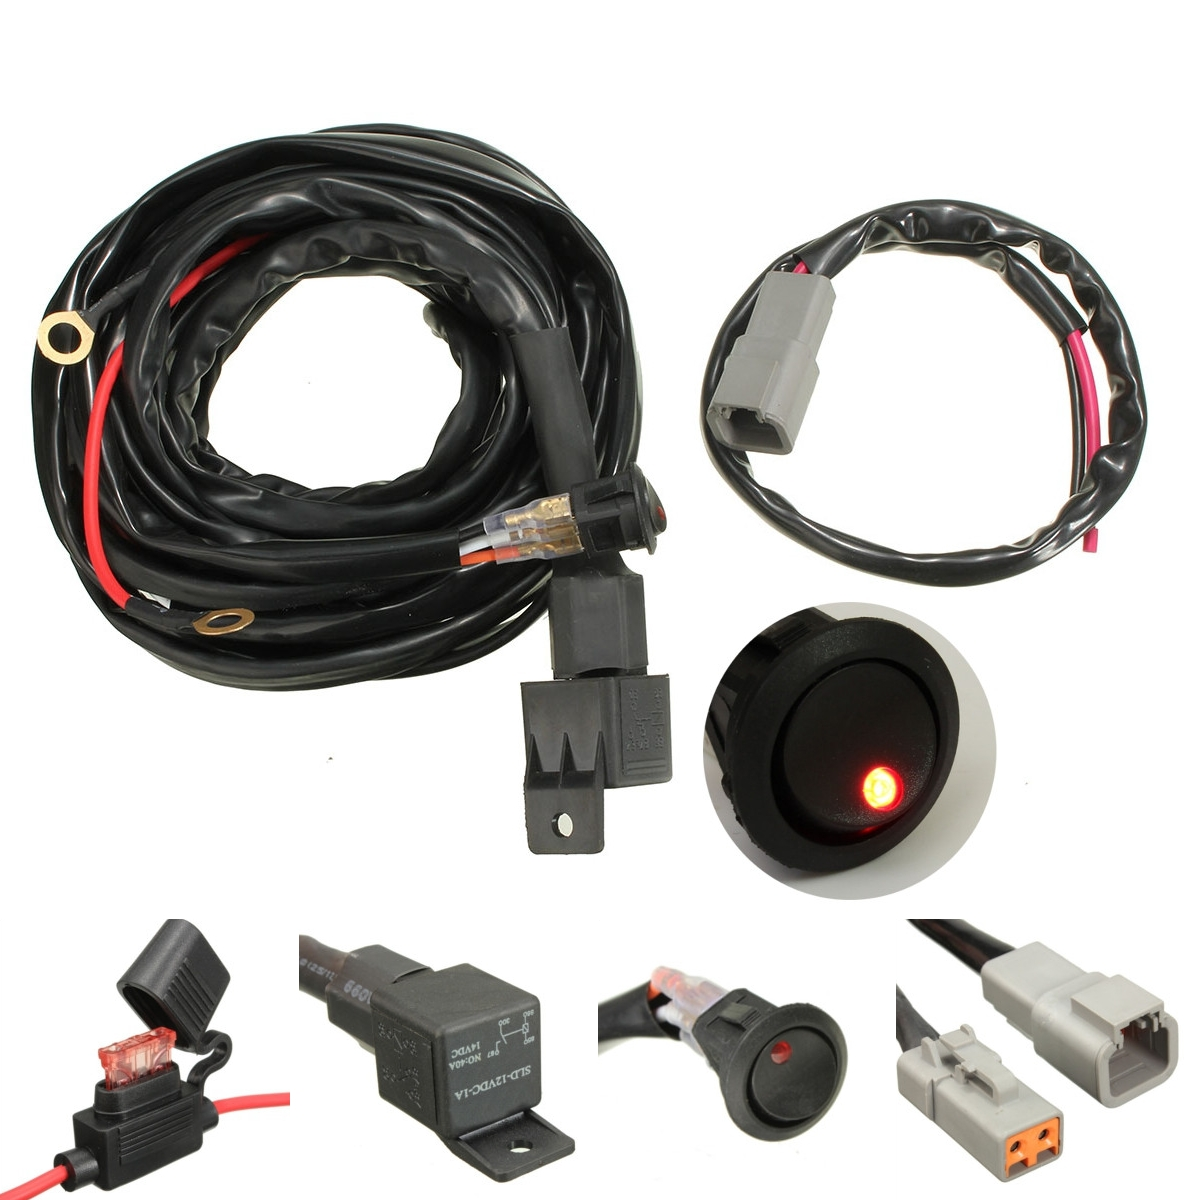 US $13.8 44% OFF|12V 40A Switch Relay Wiring Harness Kit For LED Spotlights on wiring light kit, wiring thermostat, fan kit, wiring tools kit, air bag kit, timing belt kit, bumper kit, headlights kit, transmission kit, timing chain kit, exhaust kit, hose kit, coil kit, fuel line kit, strat wiring kit, oil cooler kit, wiring connector kit, car wiring kit,